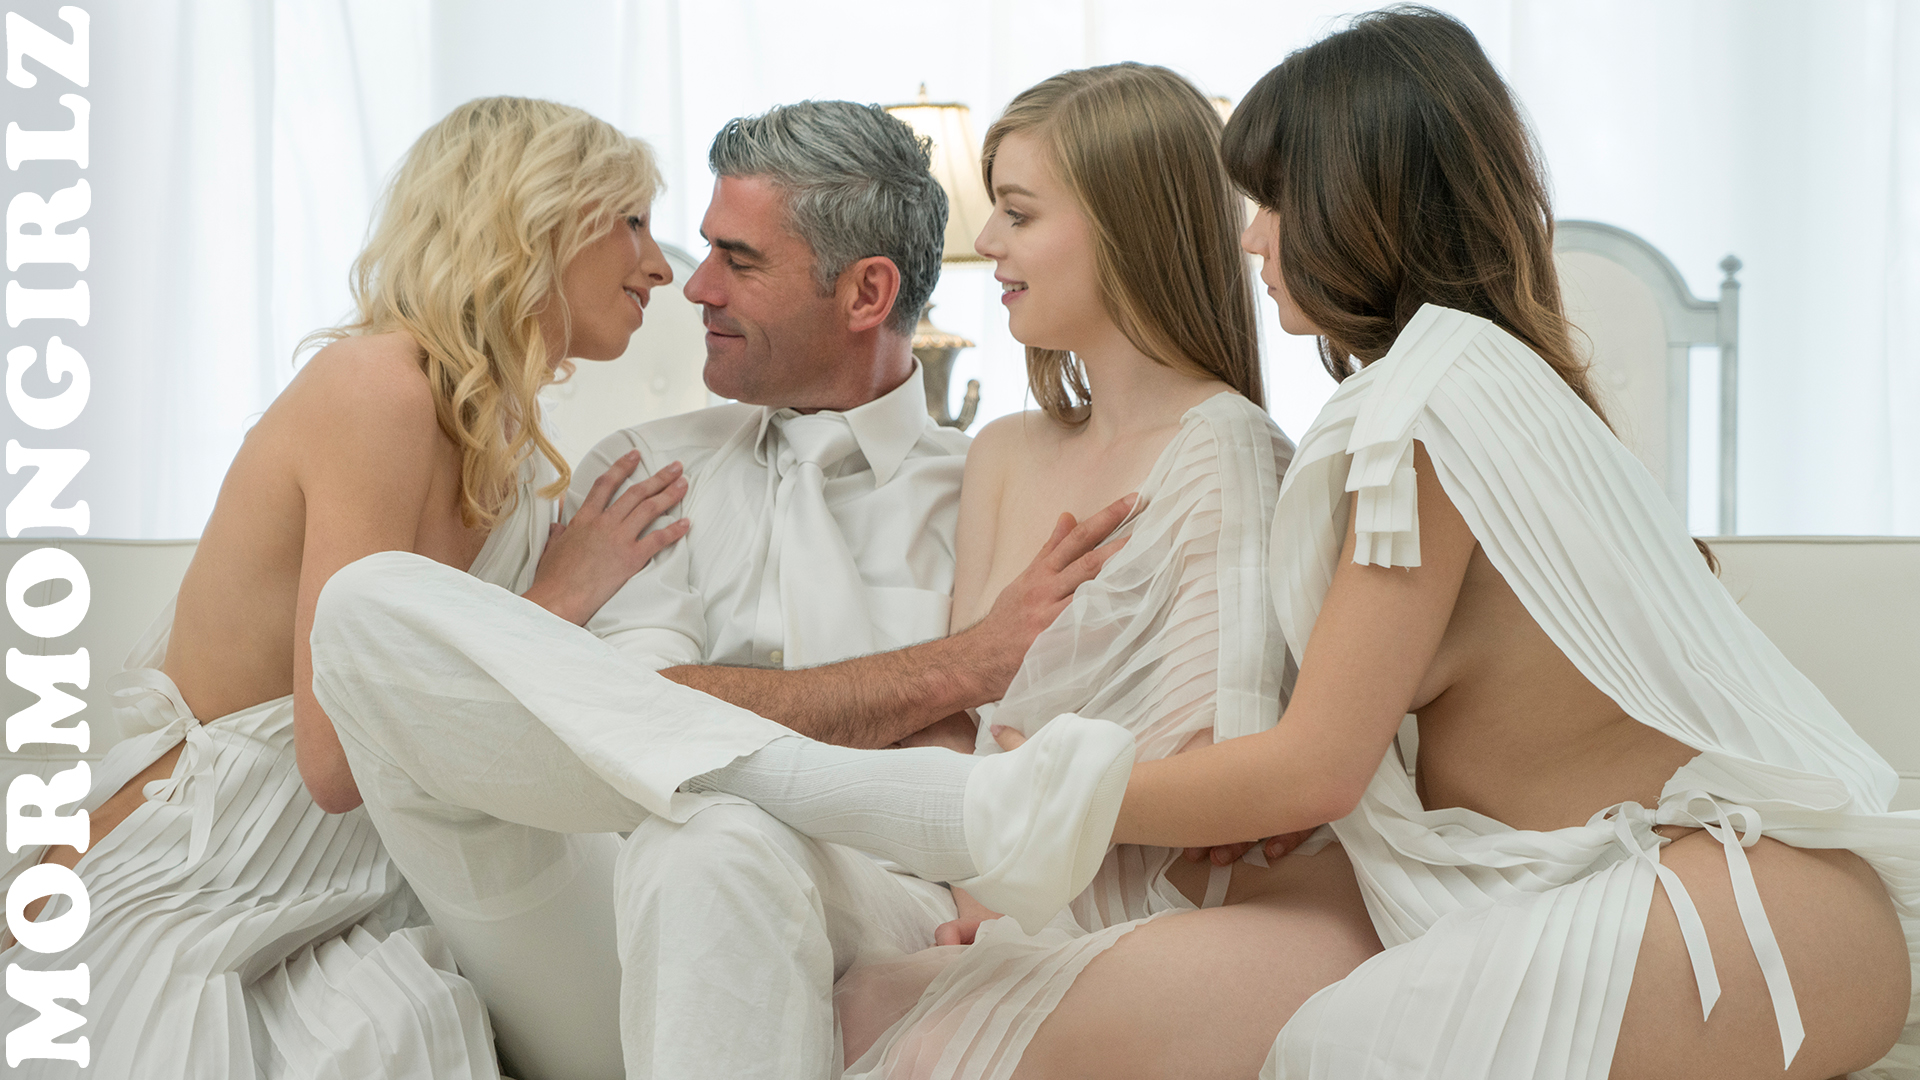 polygamic pleasures for mormon virgin susie from mormongirlz #5